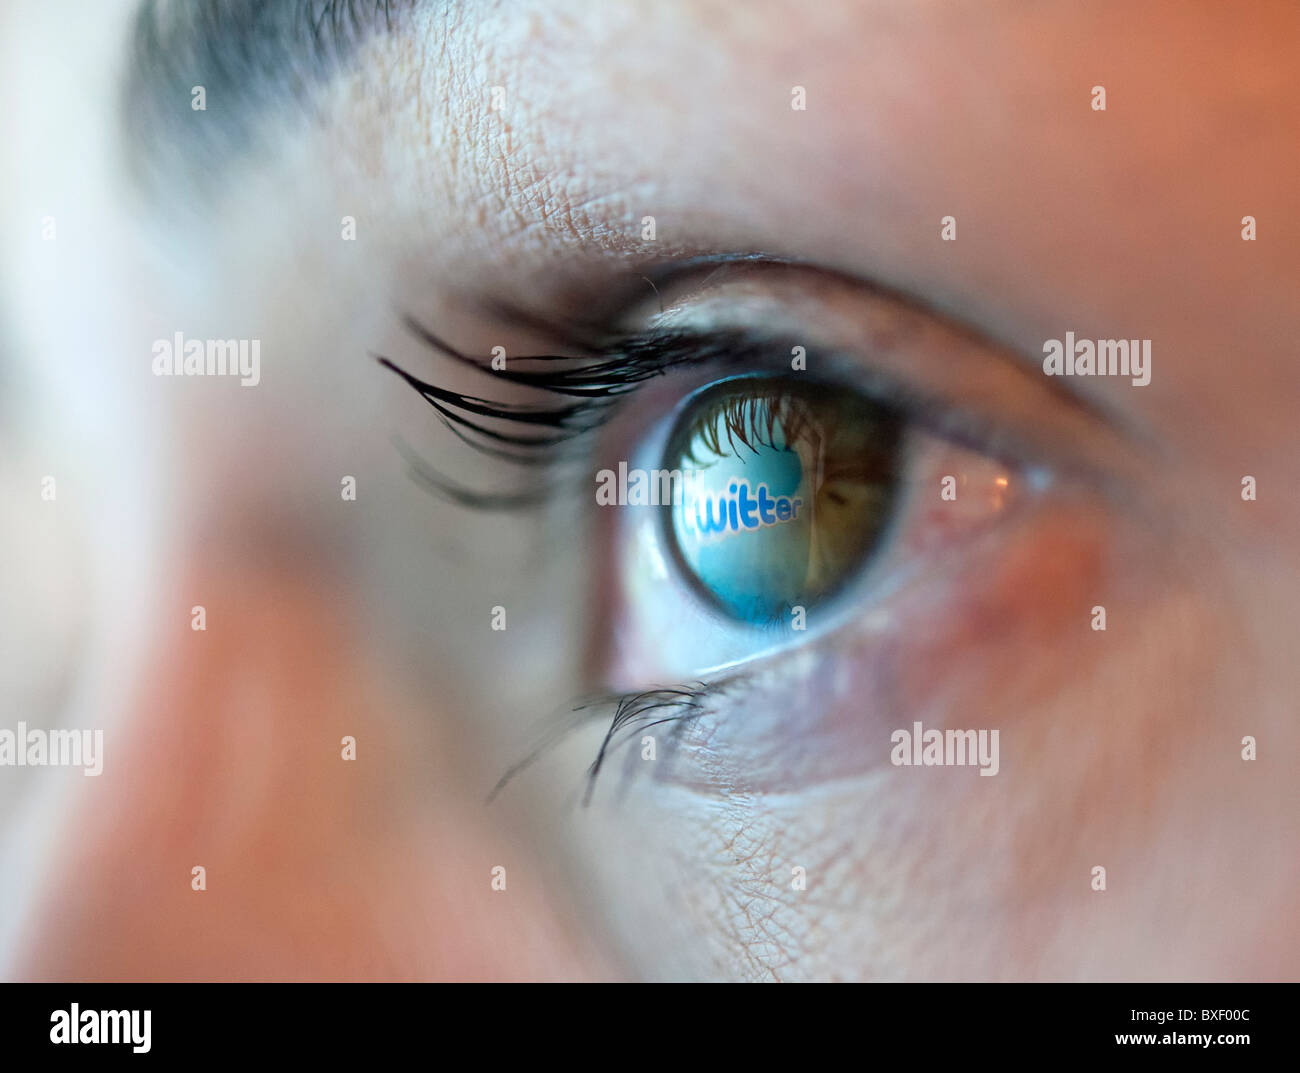 Reflection in an eye of logo from Twitter blogging website - Stock Image